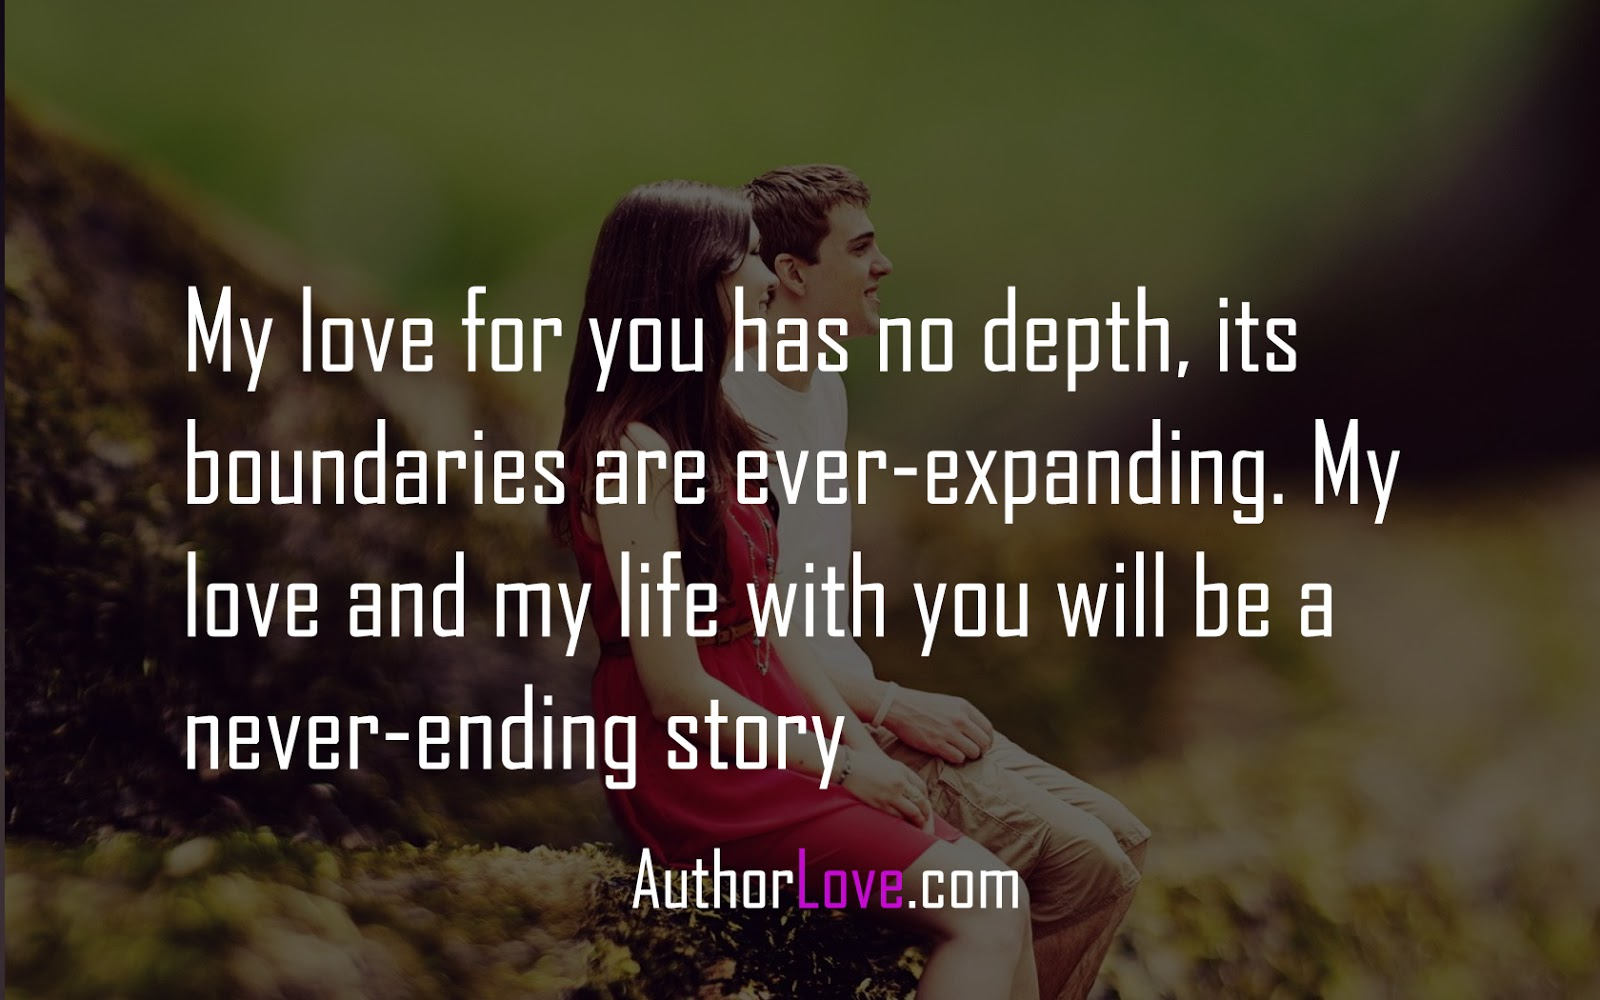 Love Quotes For My Love My Love For You Has No Depth Its Boundaries Are Everexpanding